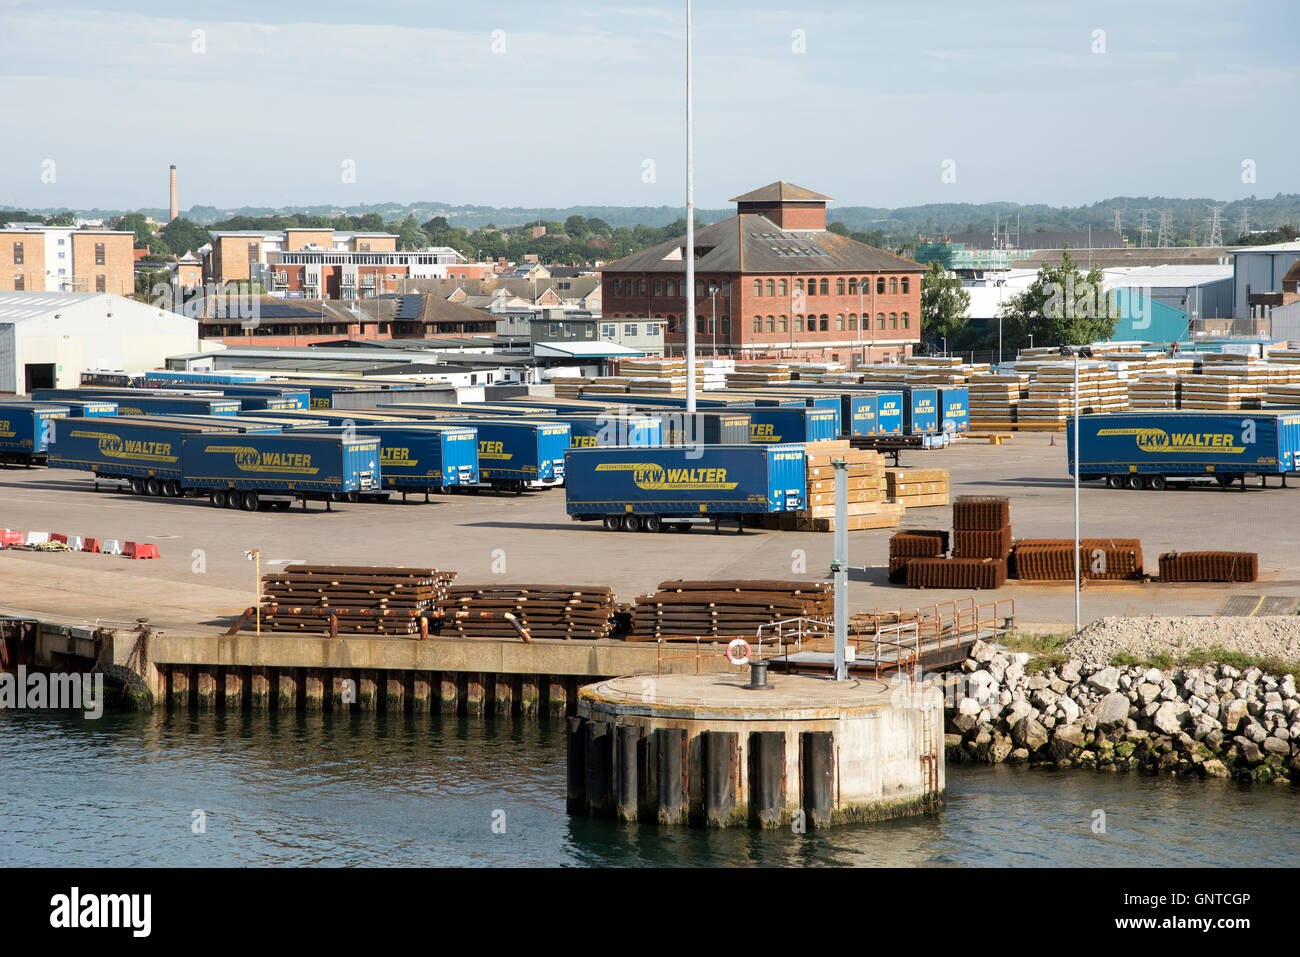 Poole Harbour Dorset UK - Commercial cargo carrying trailers parked on the quay - Stock Image